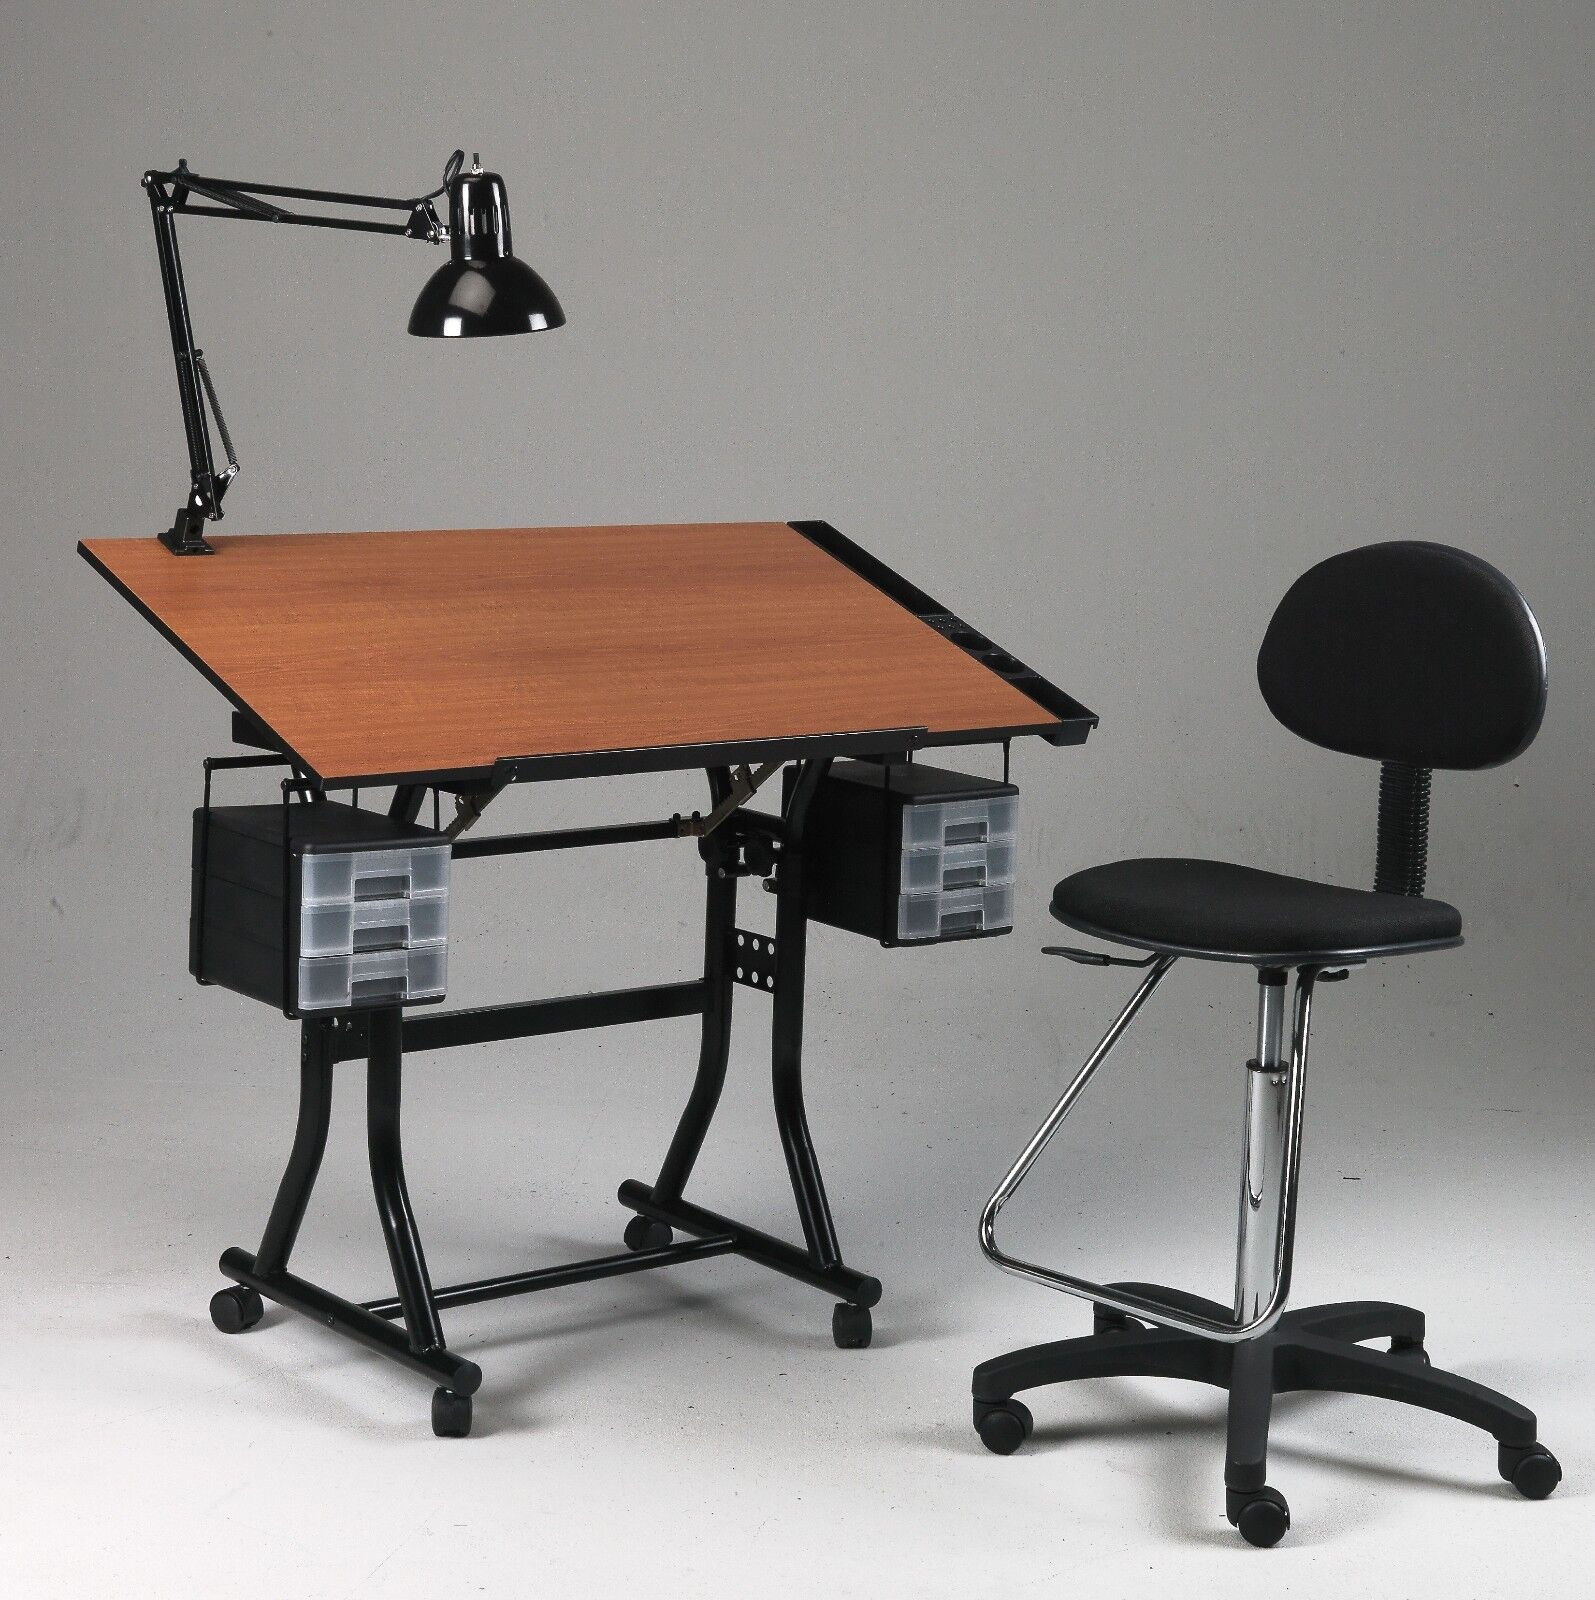 Black Drawing Art Hobby Craft Table Desk